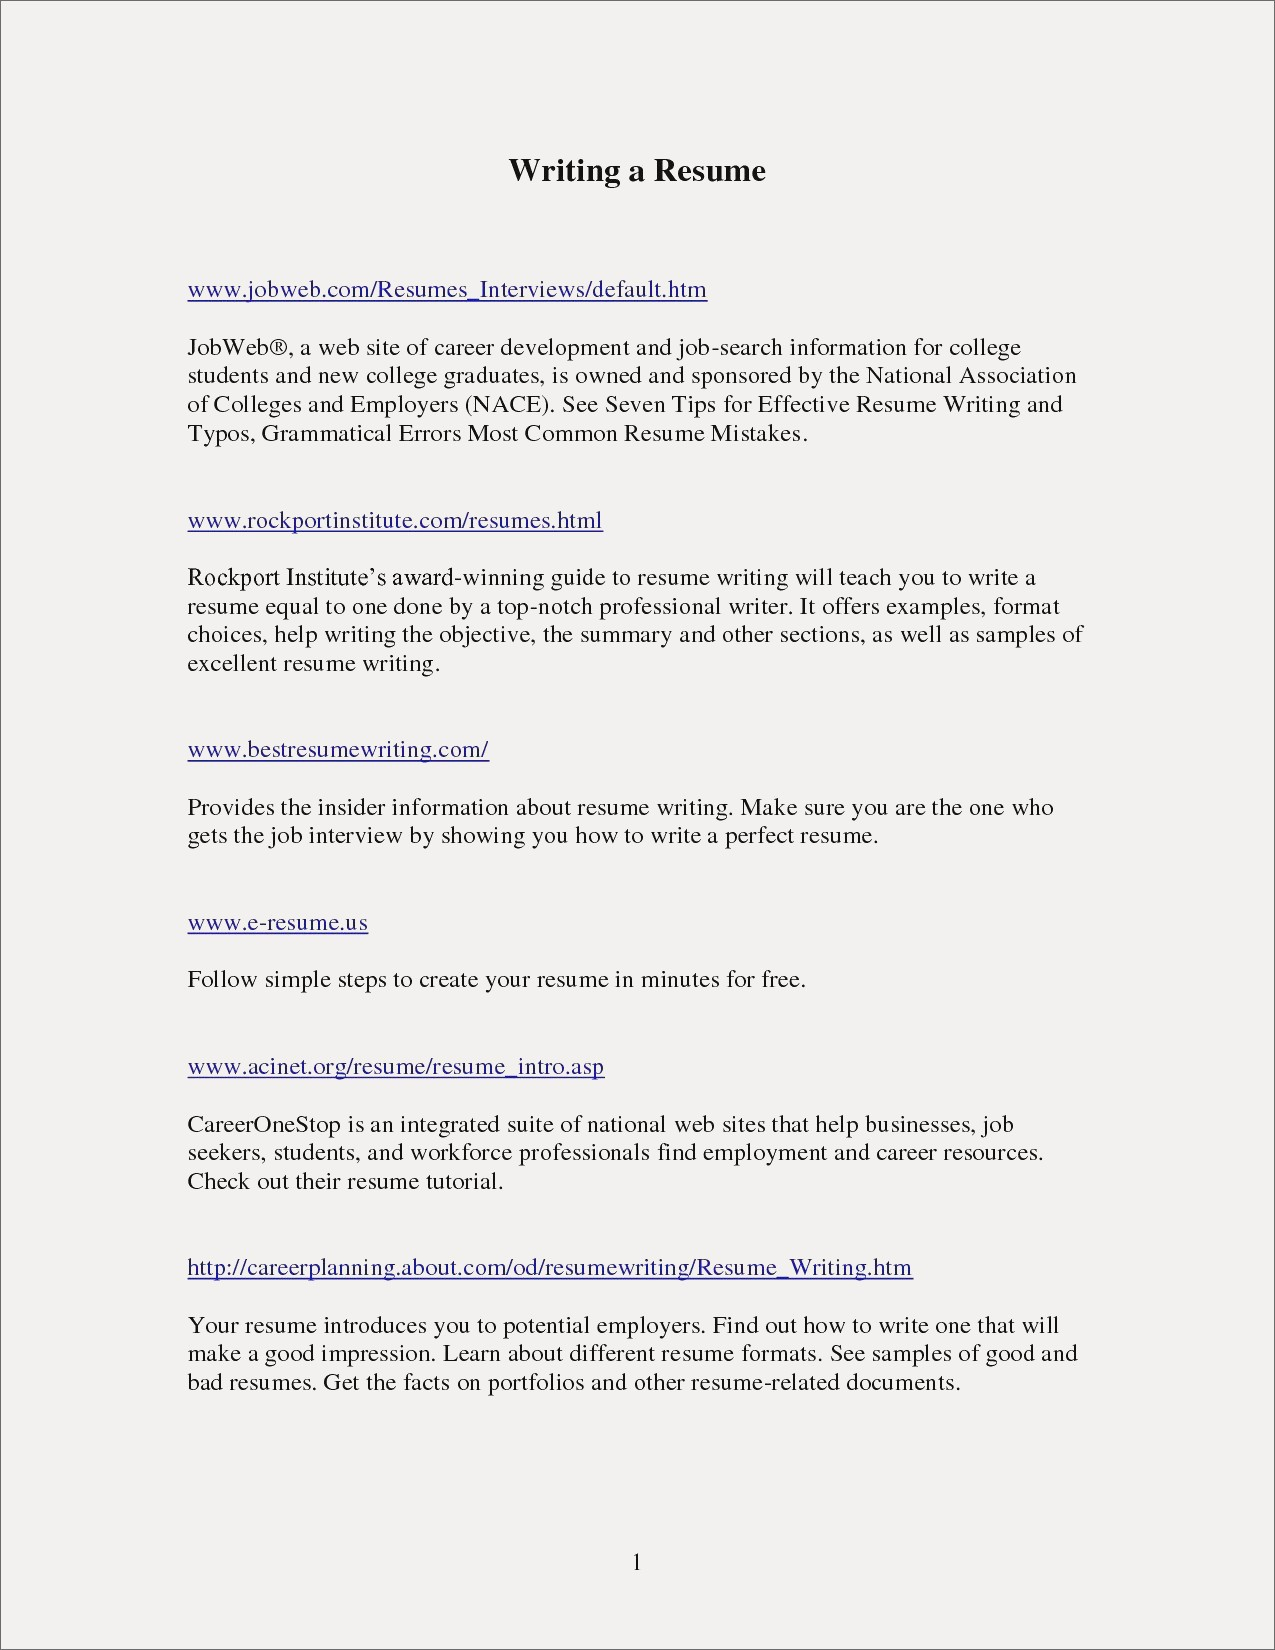 Resume Writing Tips - Sample Winning Resumes New Sample Entry Level Resume New Entry Level